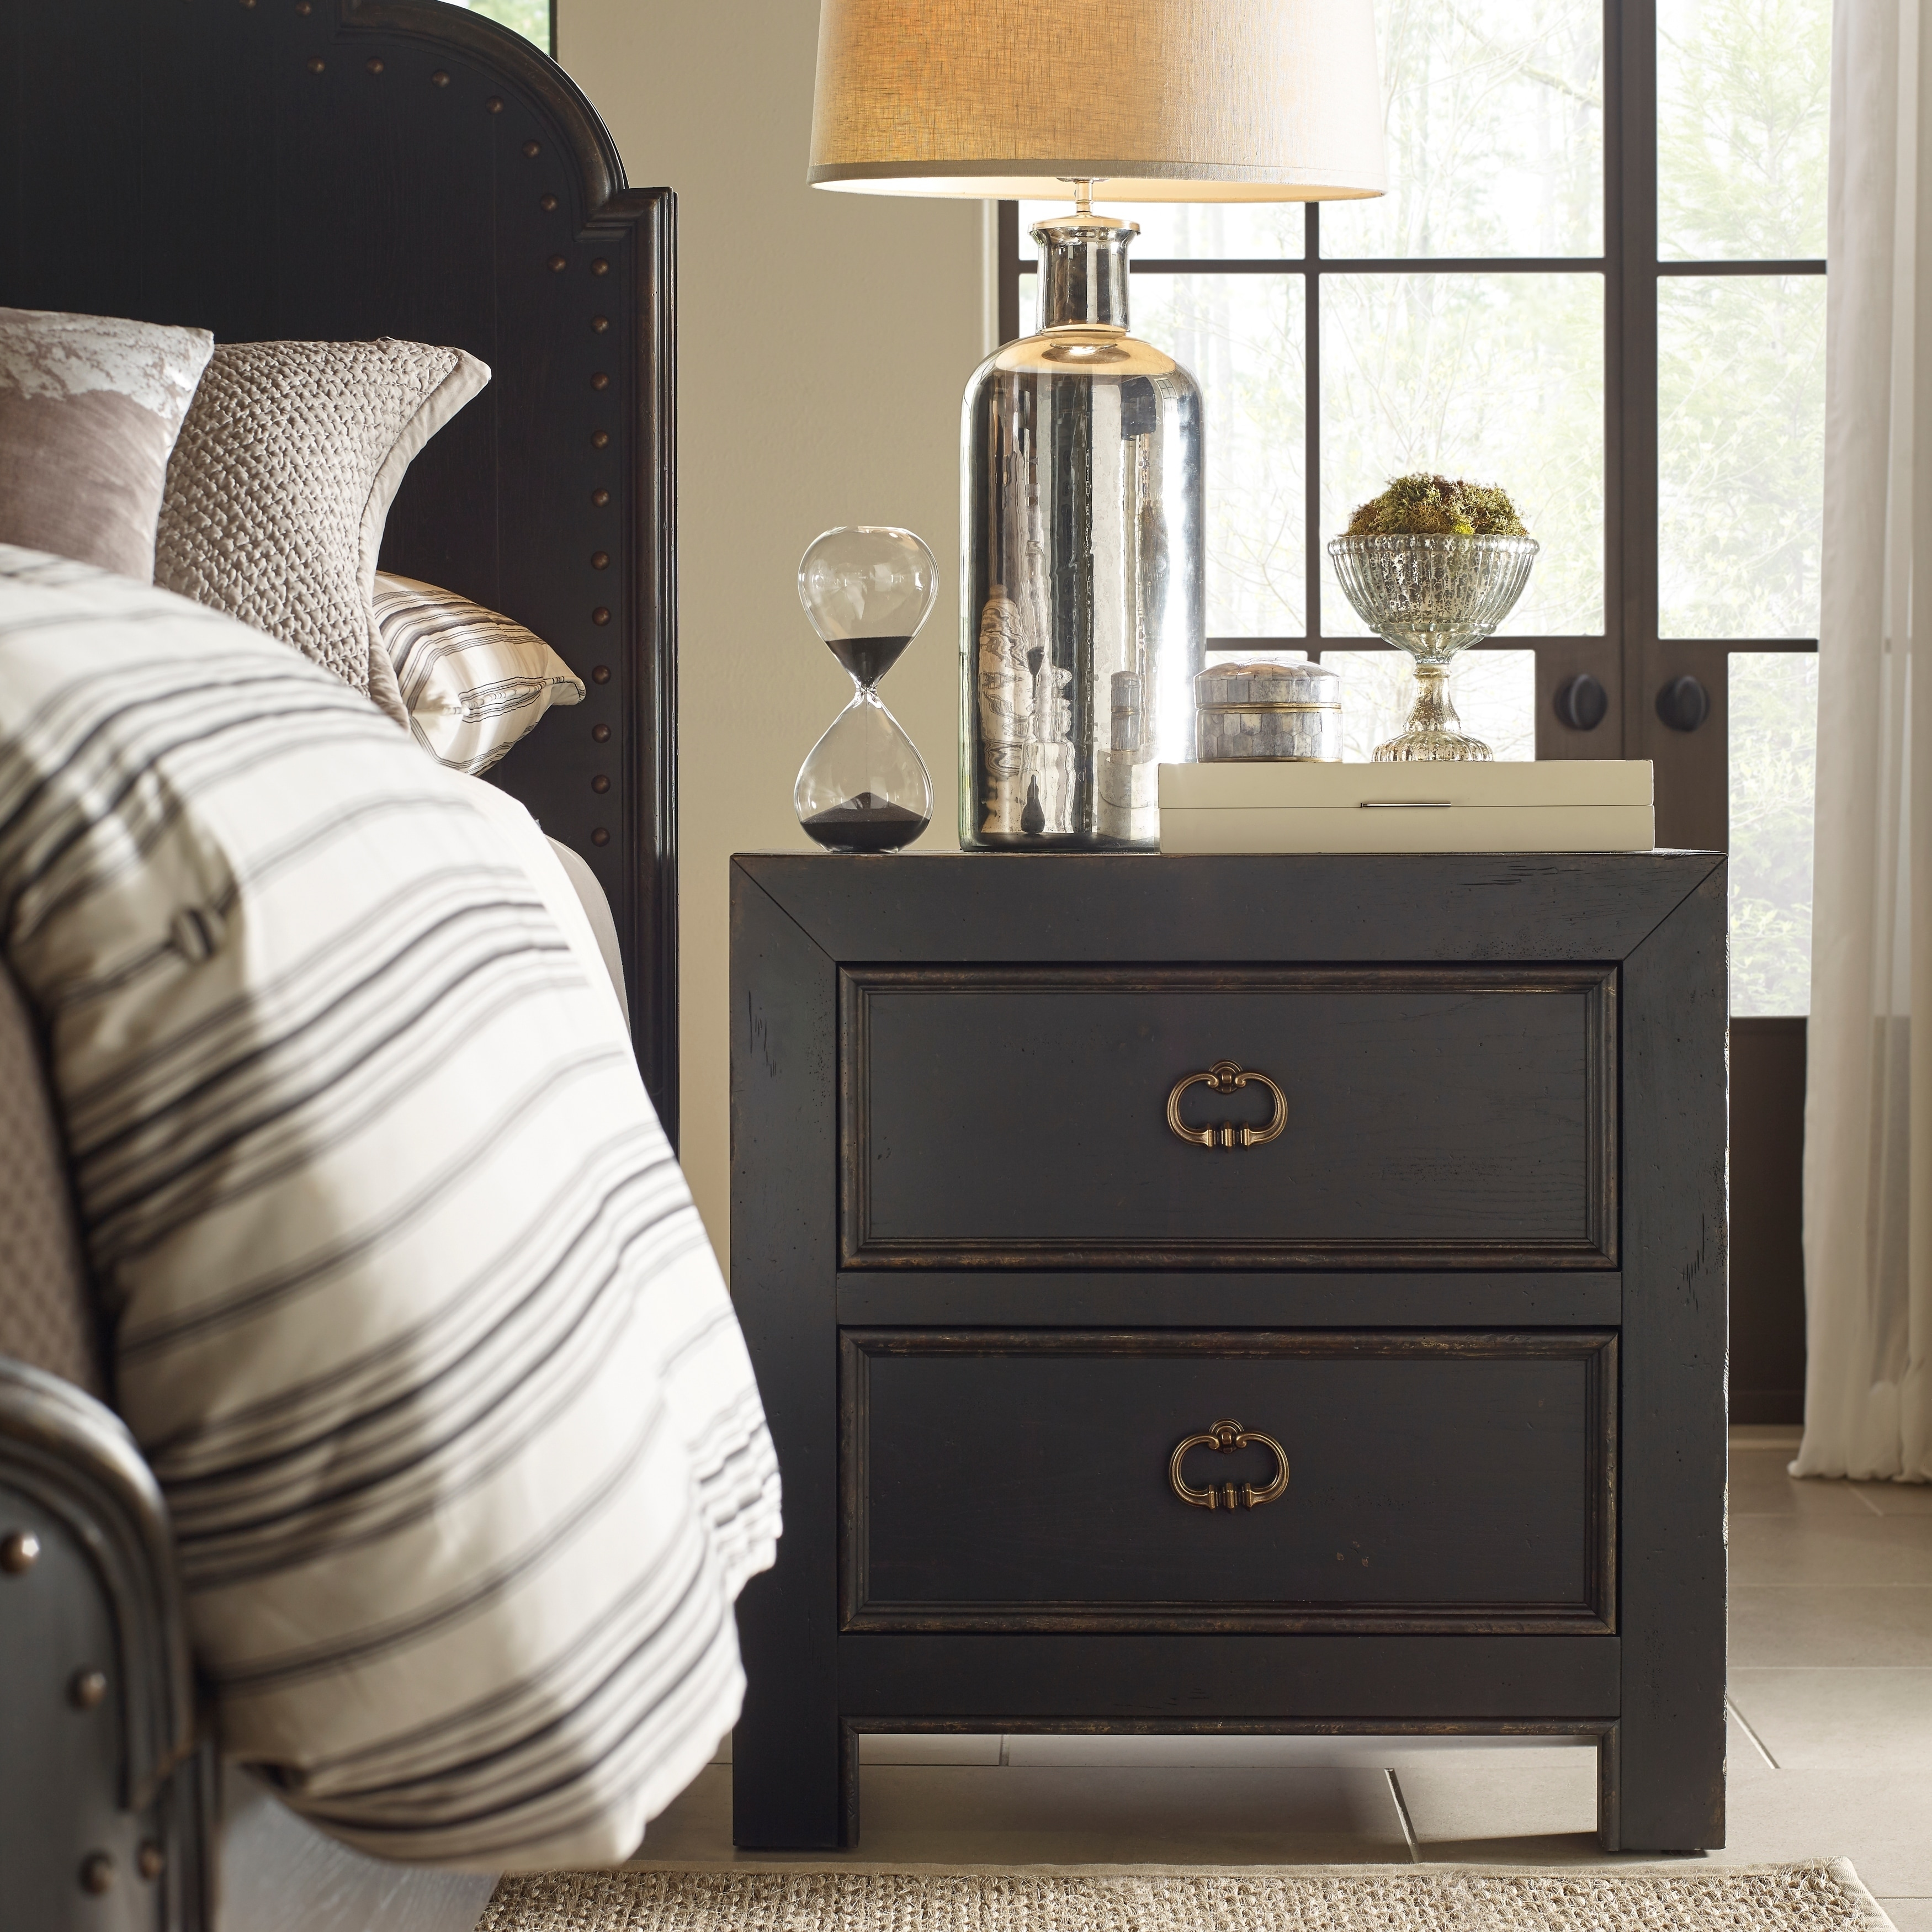 Bishop Hills Traditional Rustic Kettle Black Nightstand